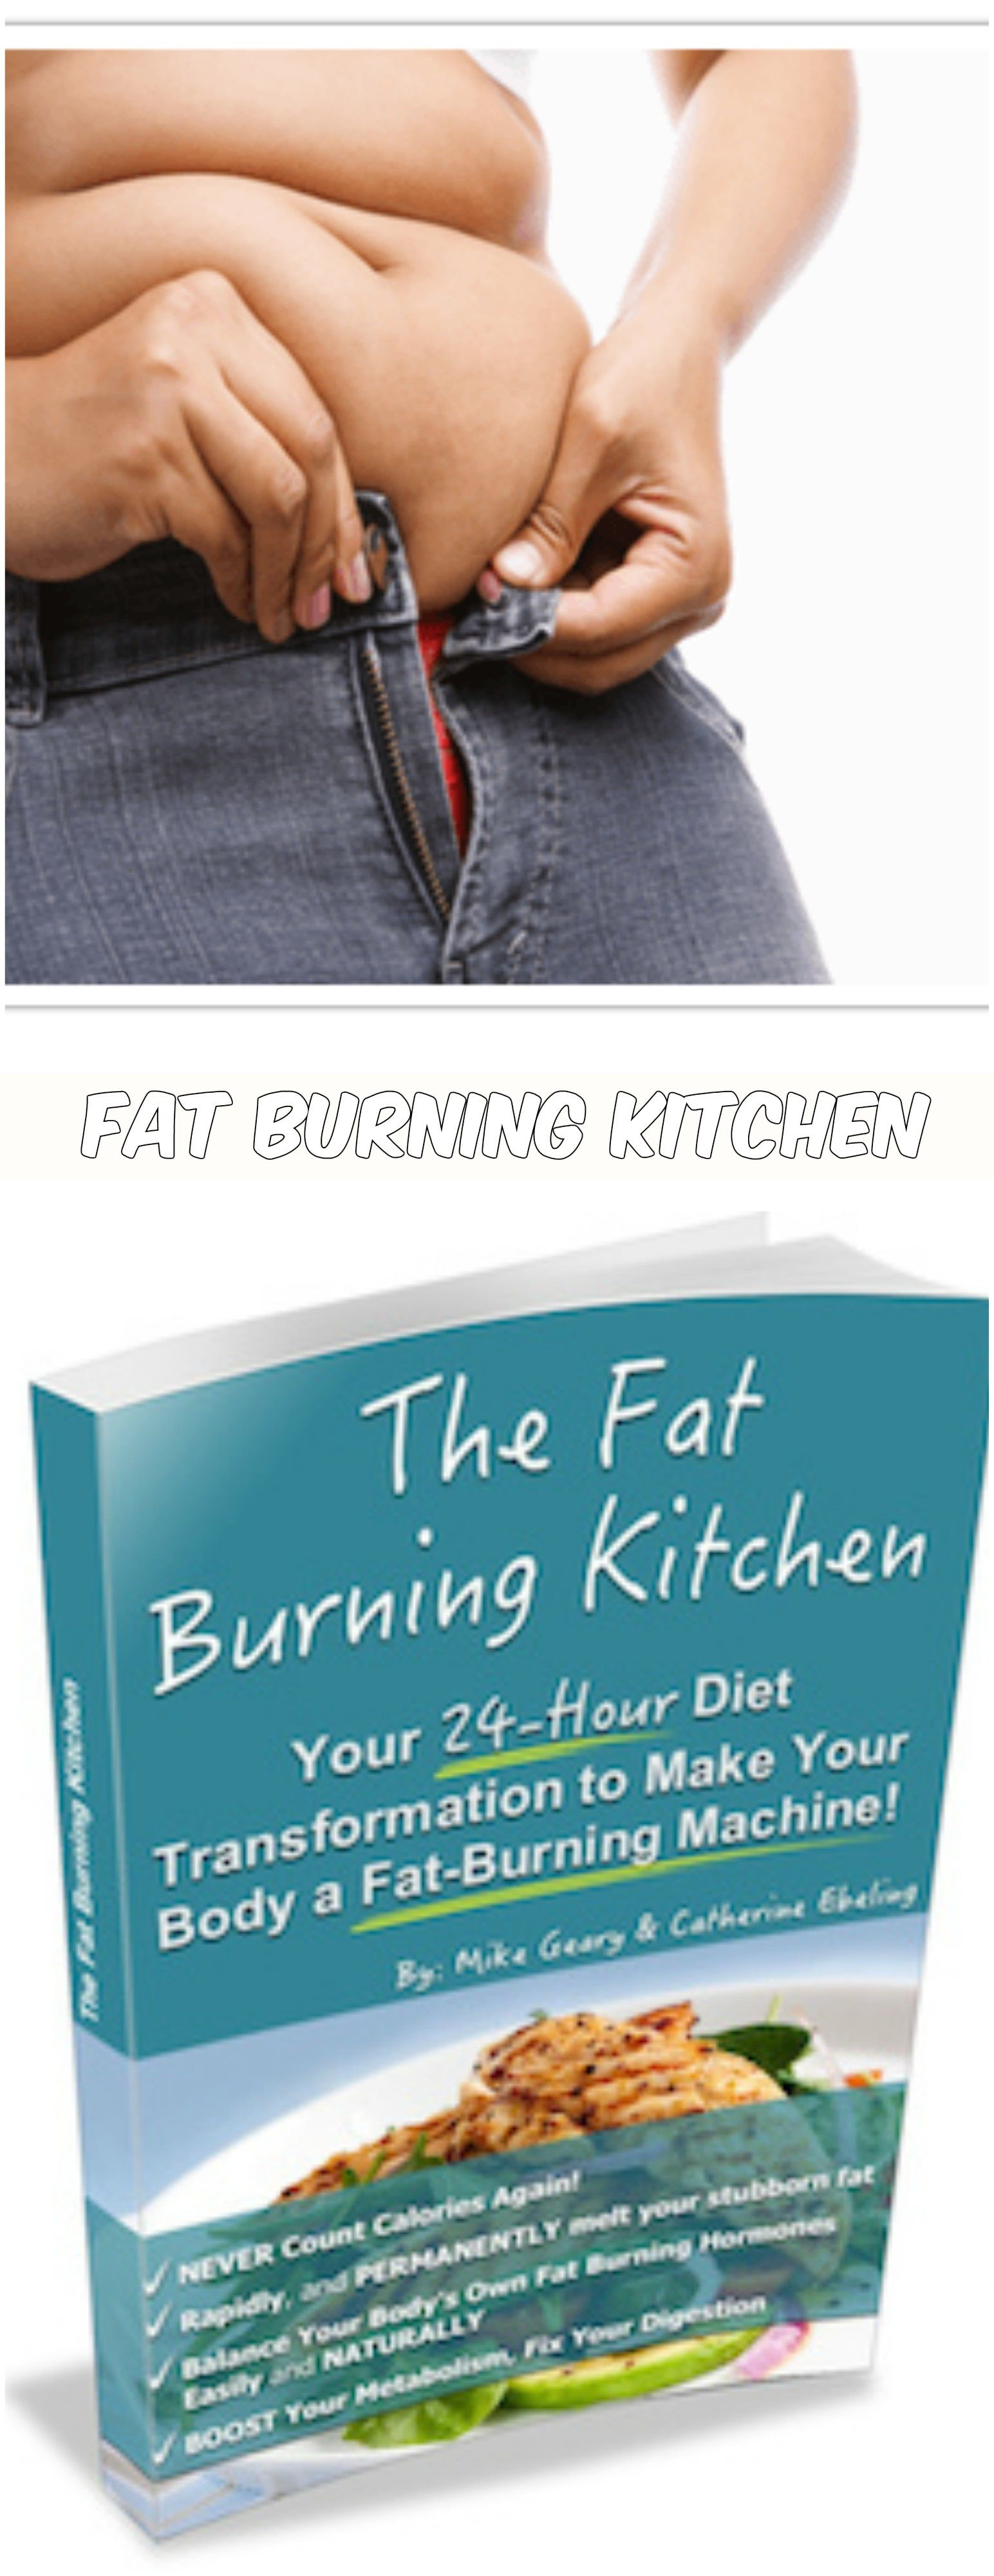 Mike Gearys The Fat Burning Kitchen Review